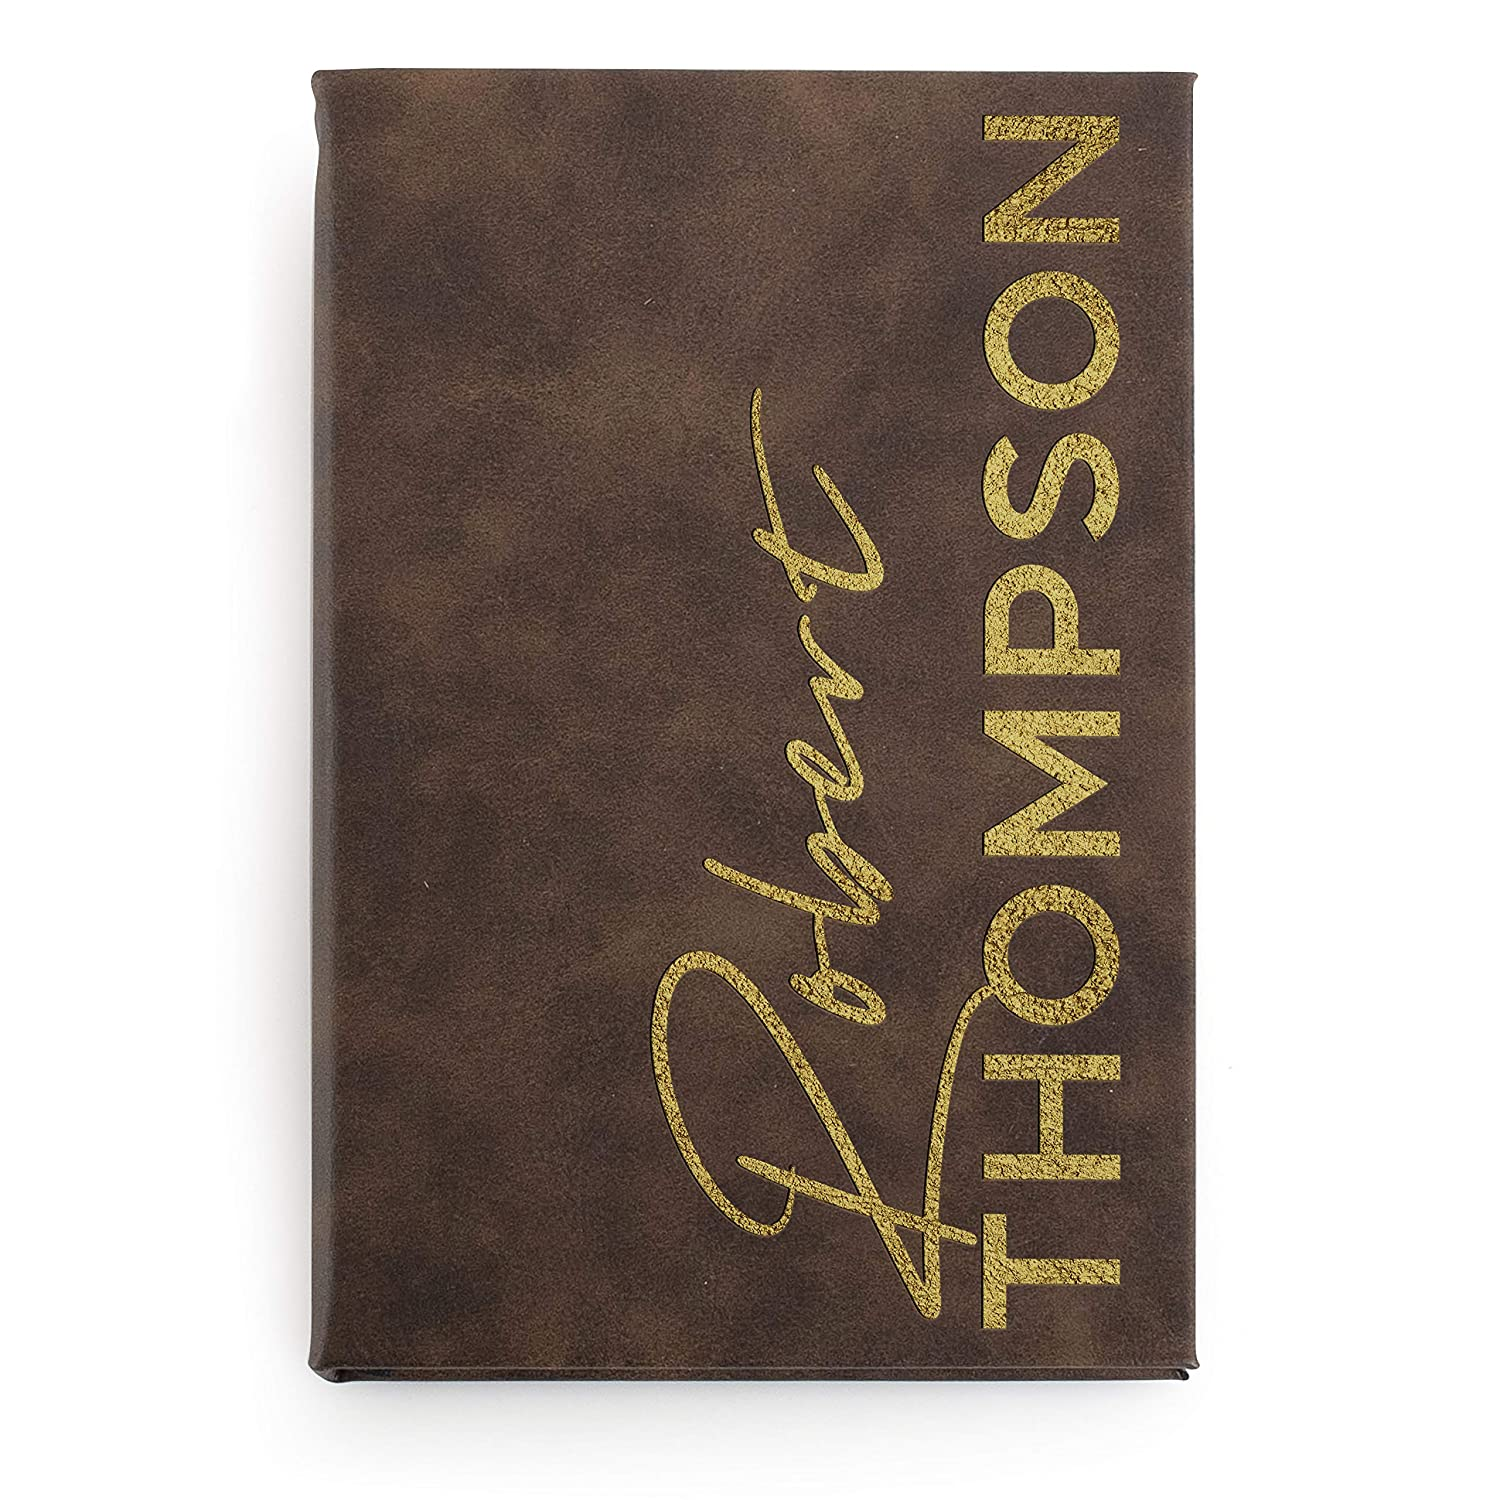 Mens Personal Journal Customized Notebooks For Women Personalized Gift Author Writers Students Graduation Teachers Appreciation Cool Birthday Gifts